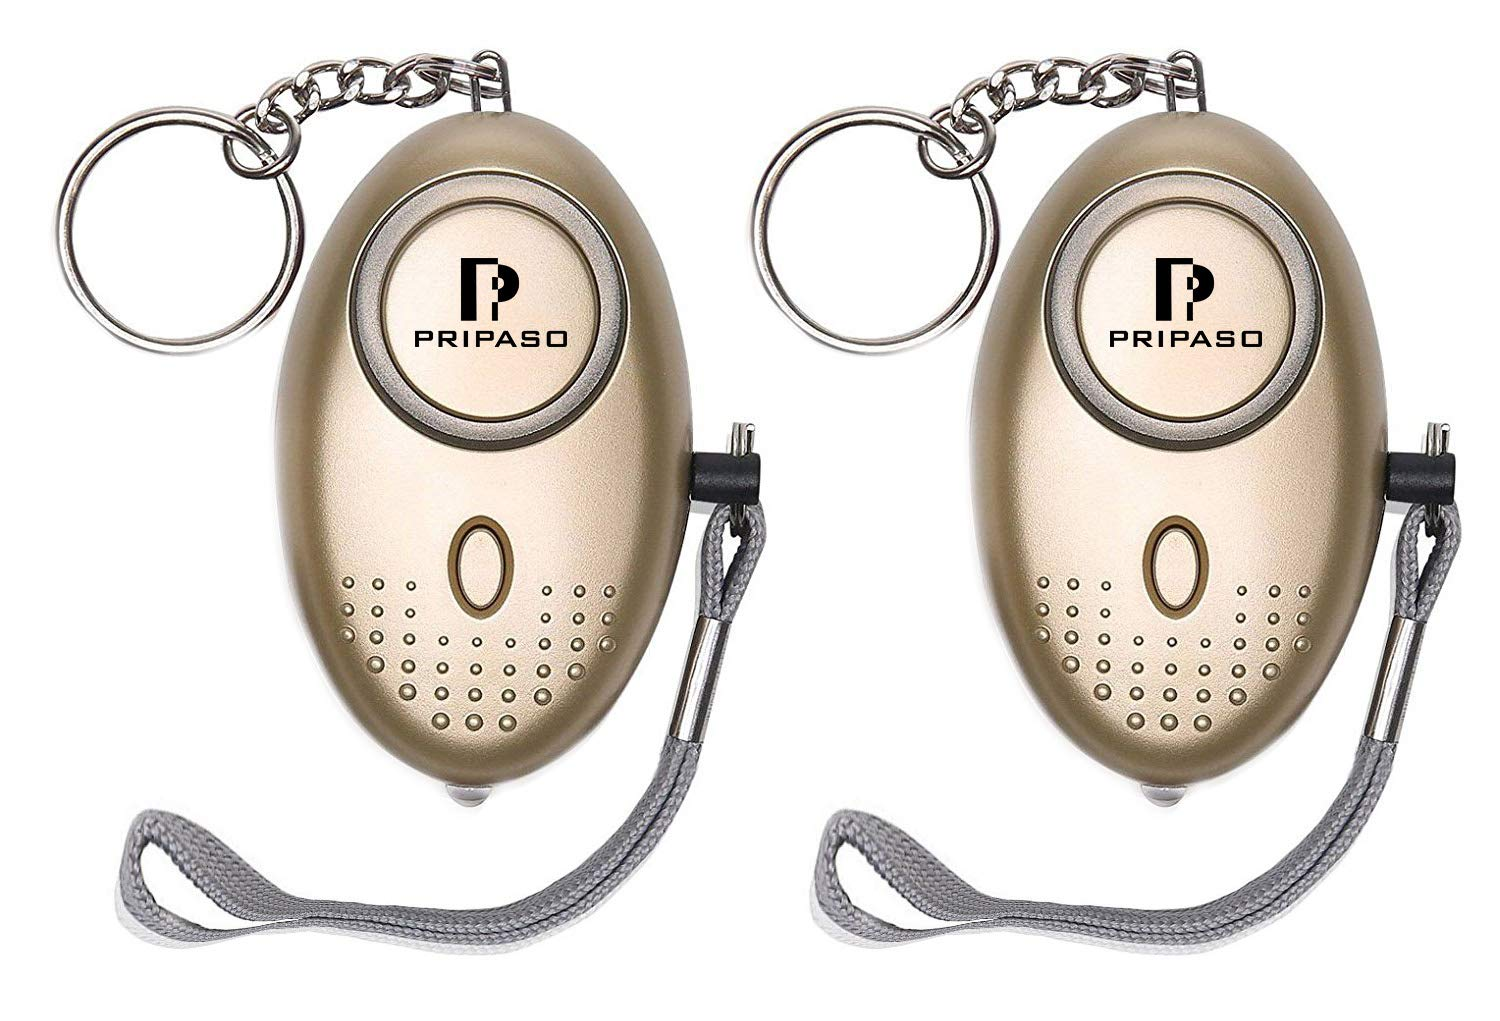 Emergency Personal Alarm, 130Db Safesound Personal Security Alarm Keychain with LED Flashlight Portable Safety Alarm for Women, Kids, Girls, Self Defense Electronic Device (2Pack Gold)